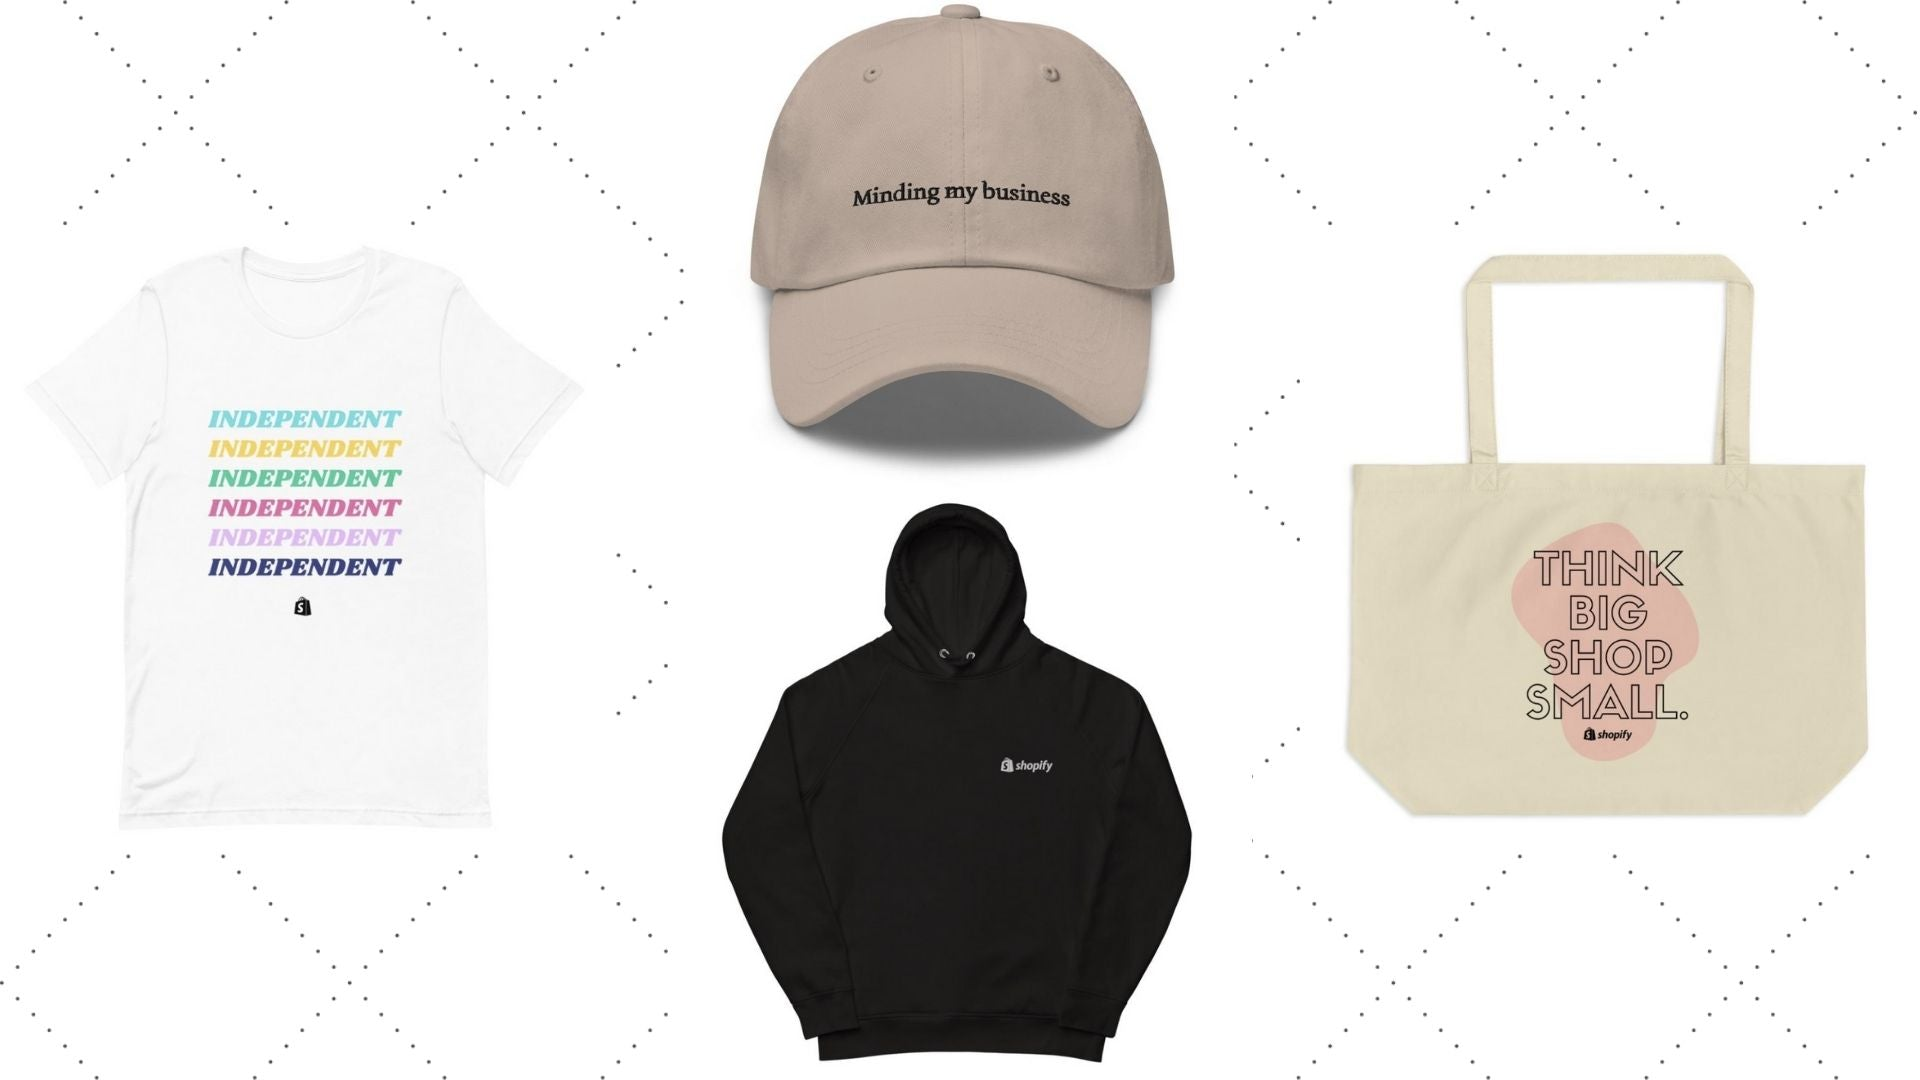 four shopify merch concepts (a dad hat, hoodie, tote bag, and t-shirt)